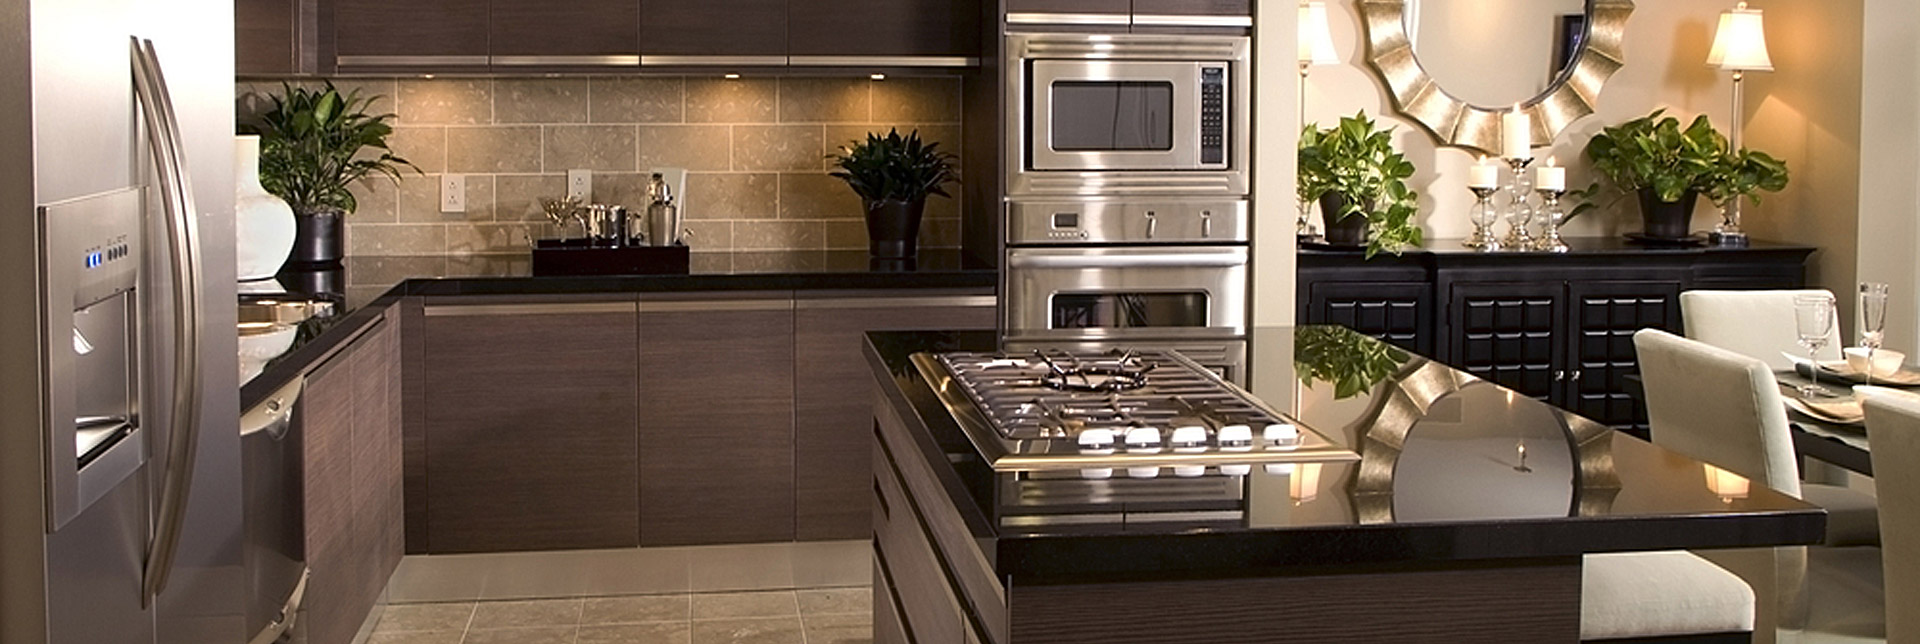 Uncategorized Kitchen Design Canberra about icandy kitchens joinery in canberra us